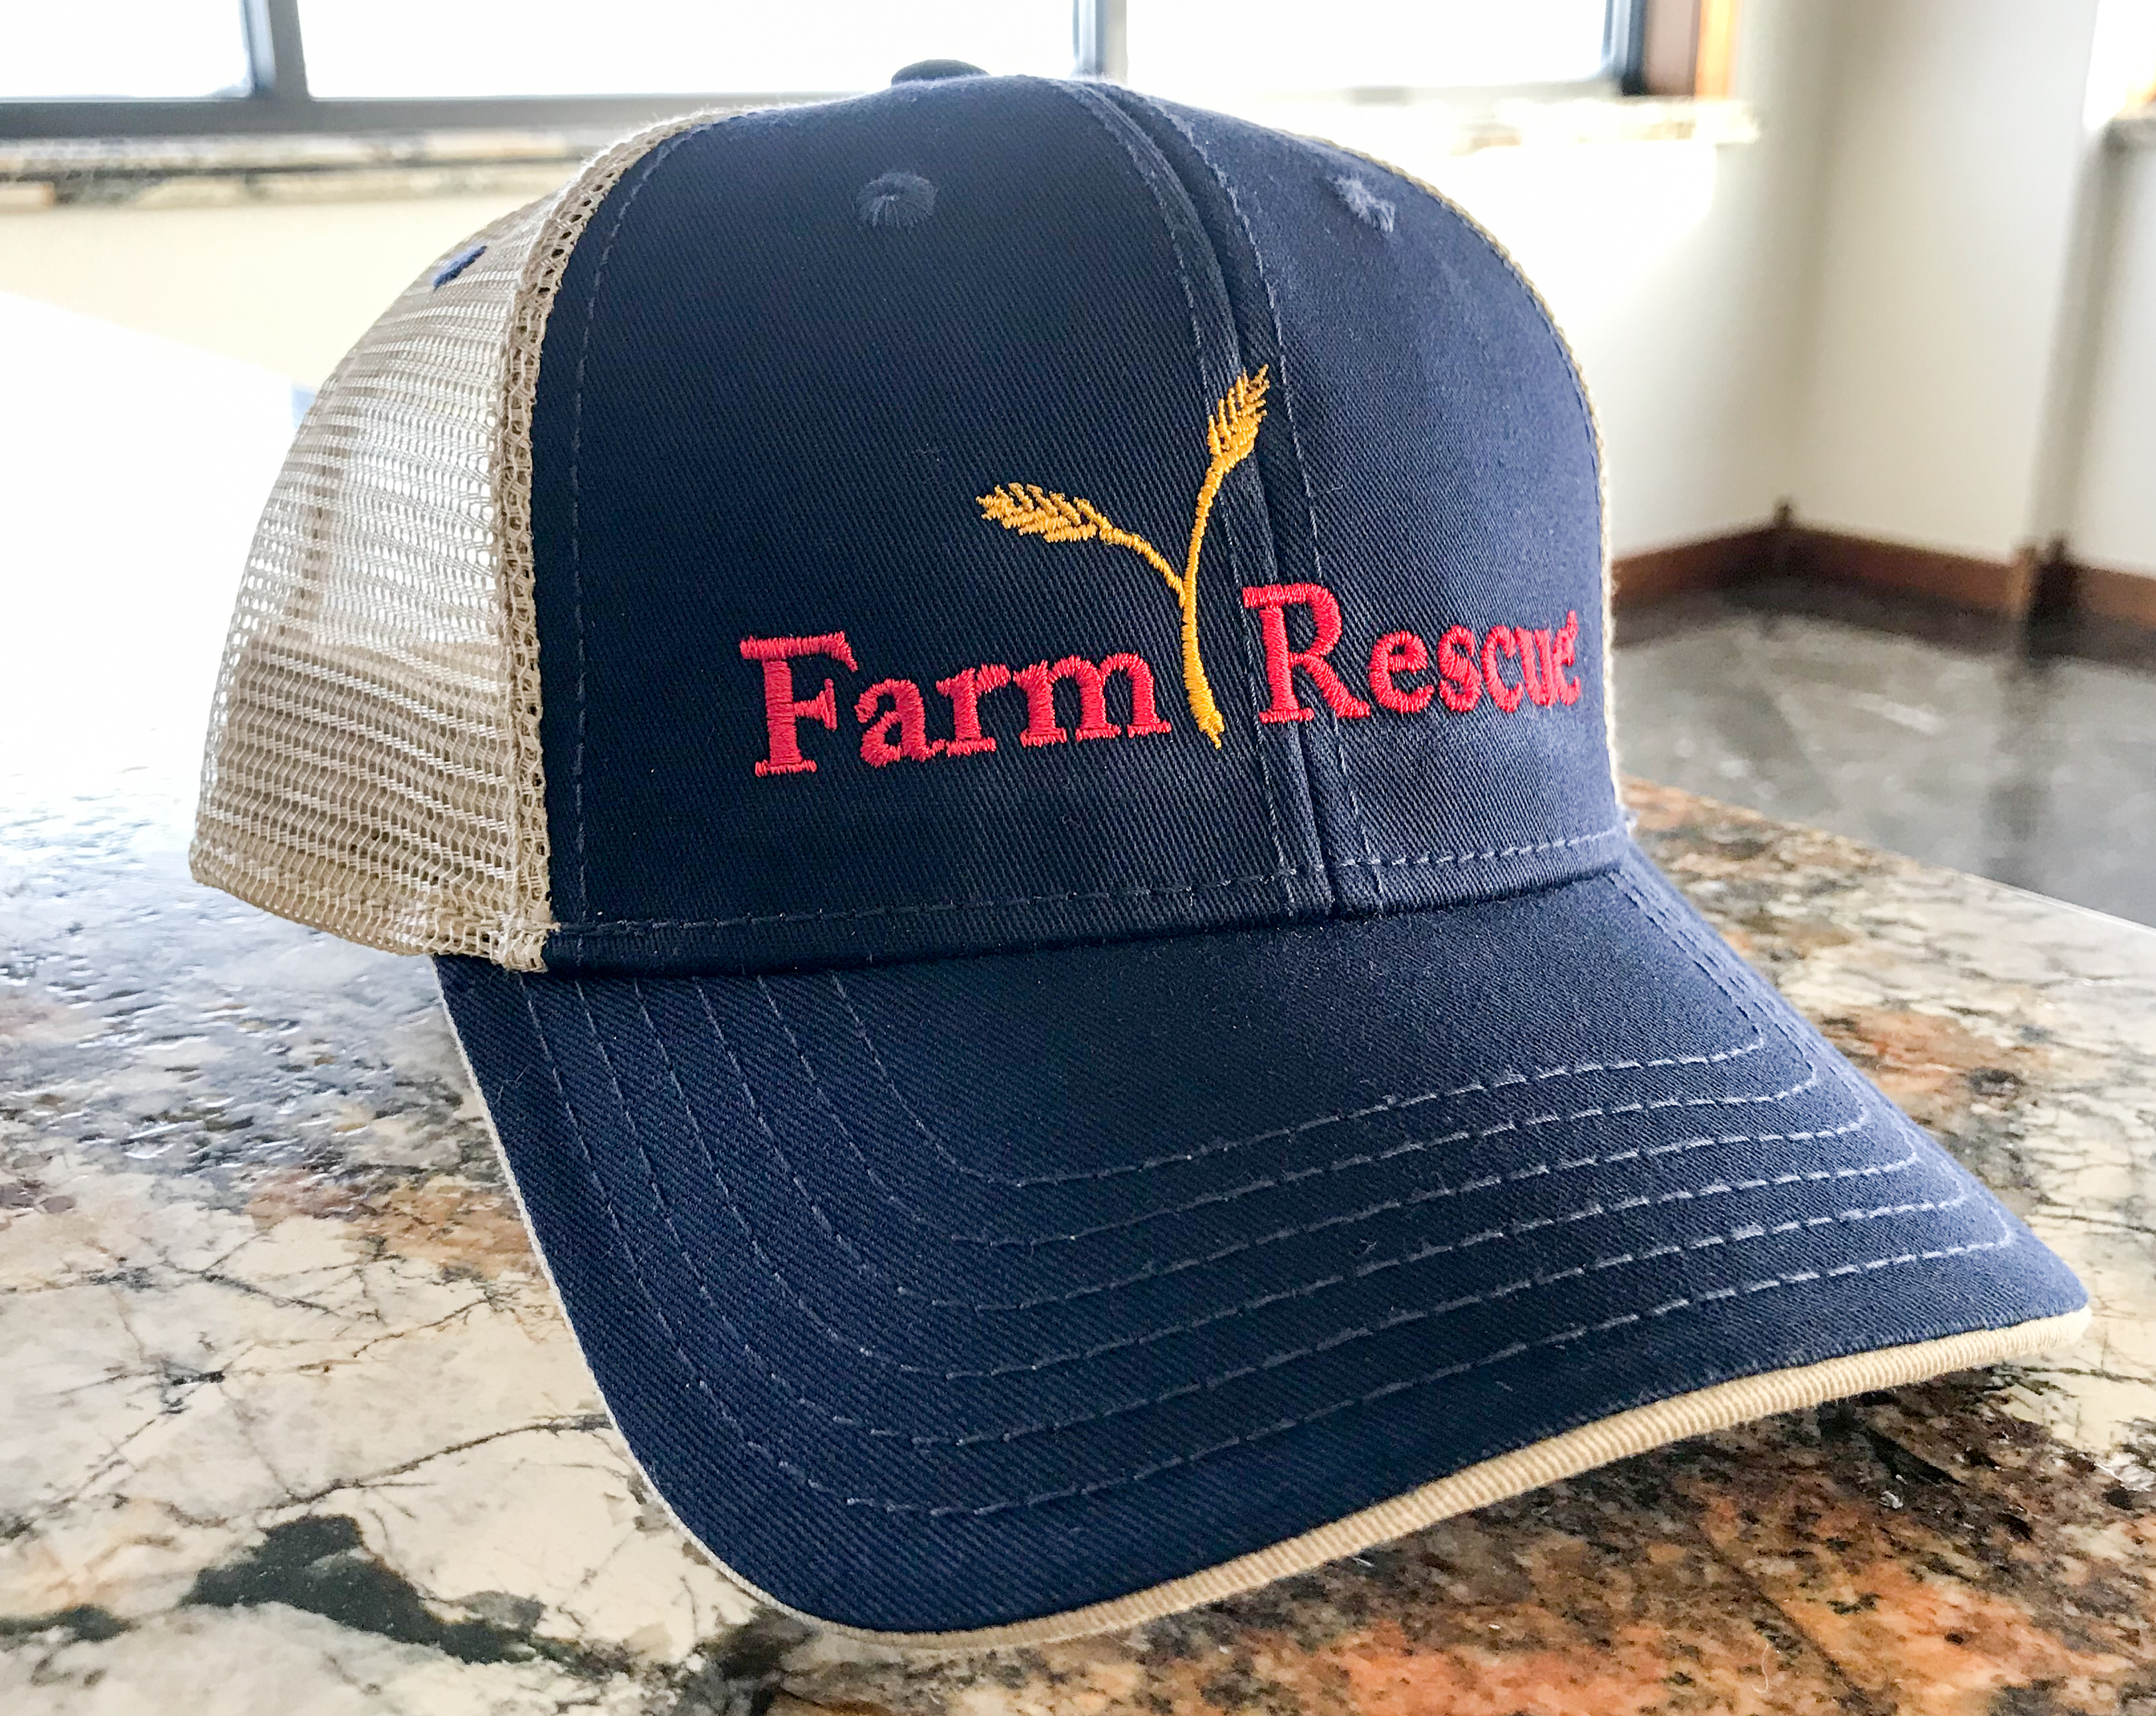 Farm Rescue Embroidered Cap